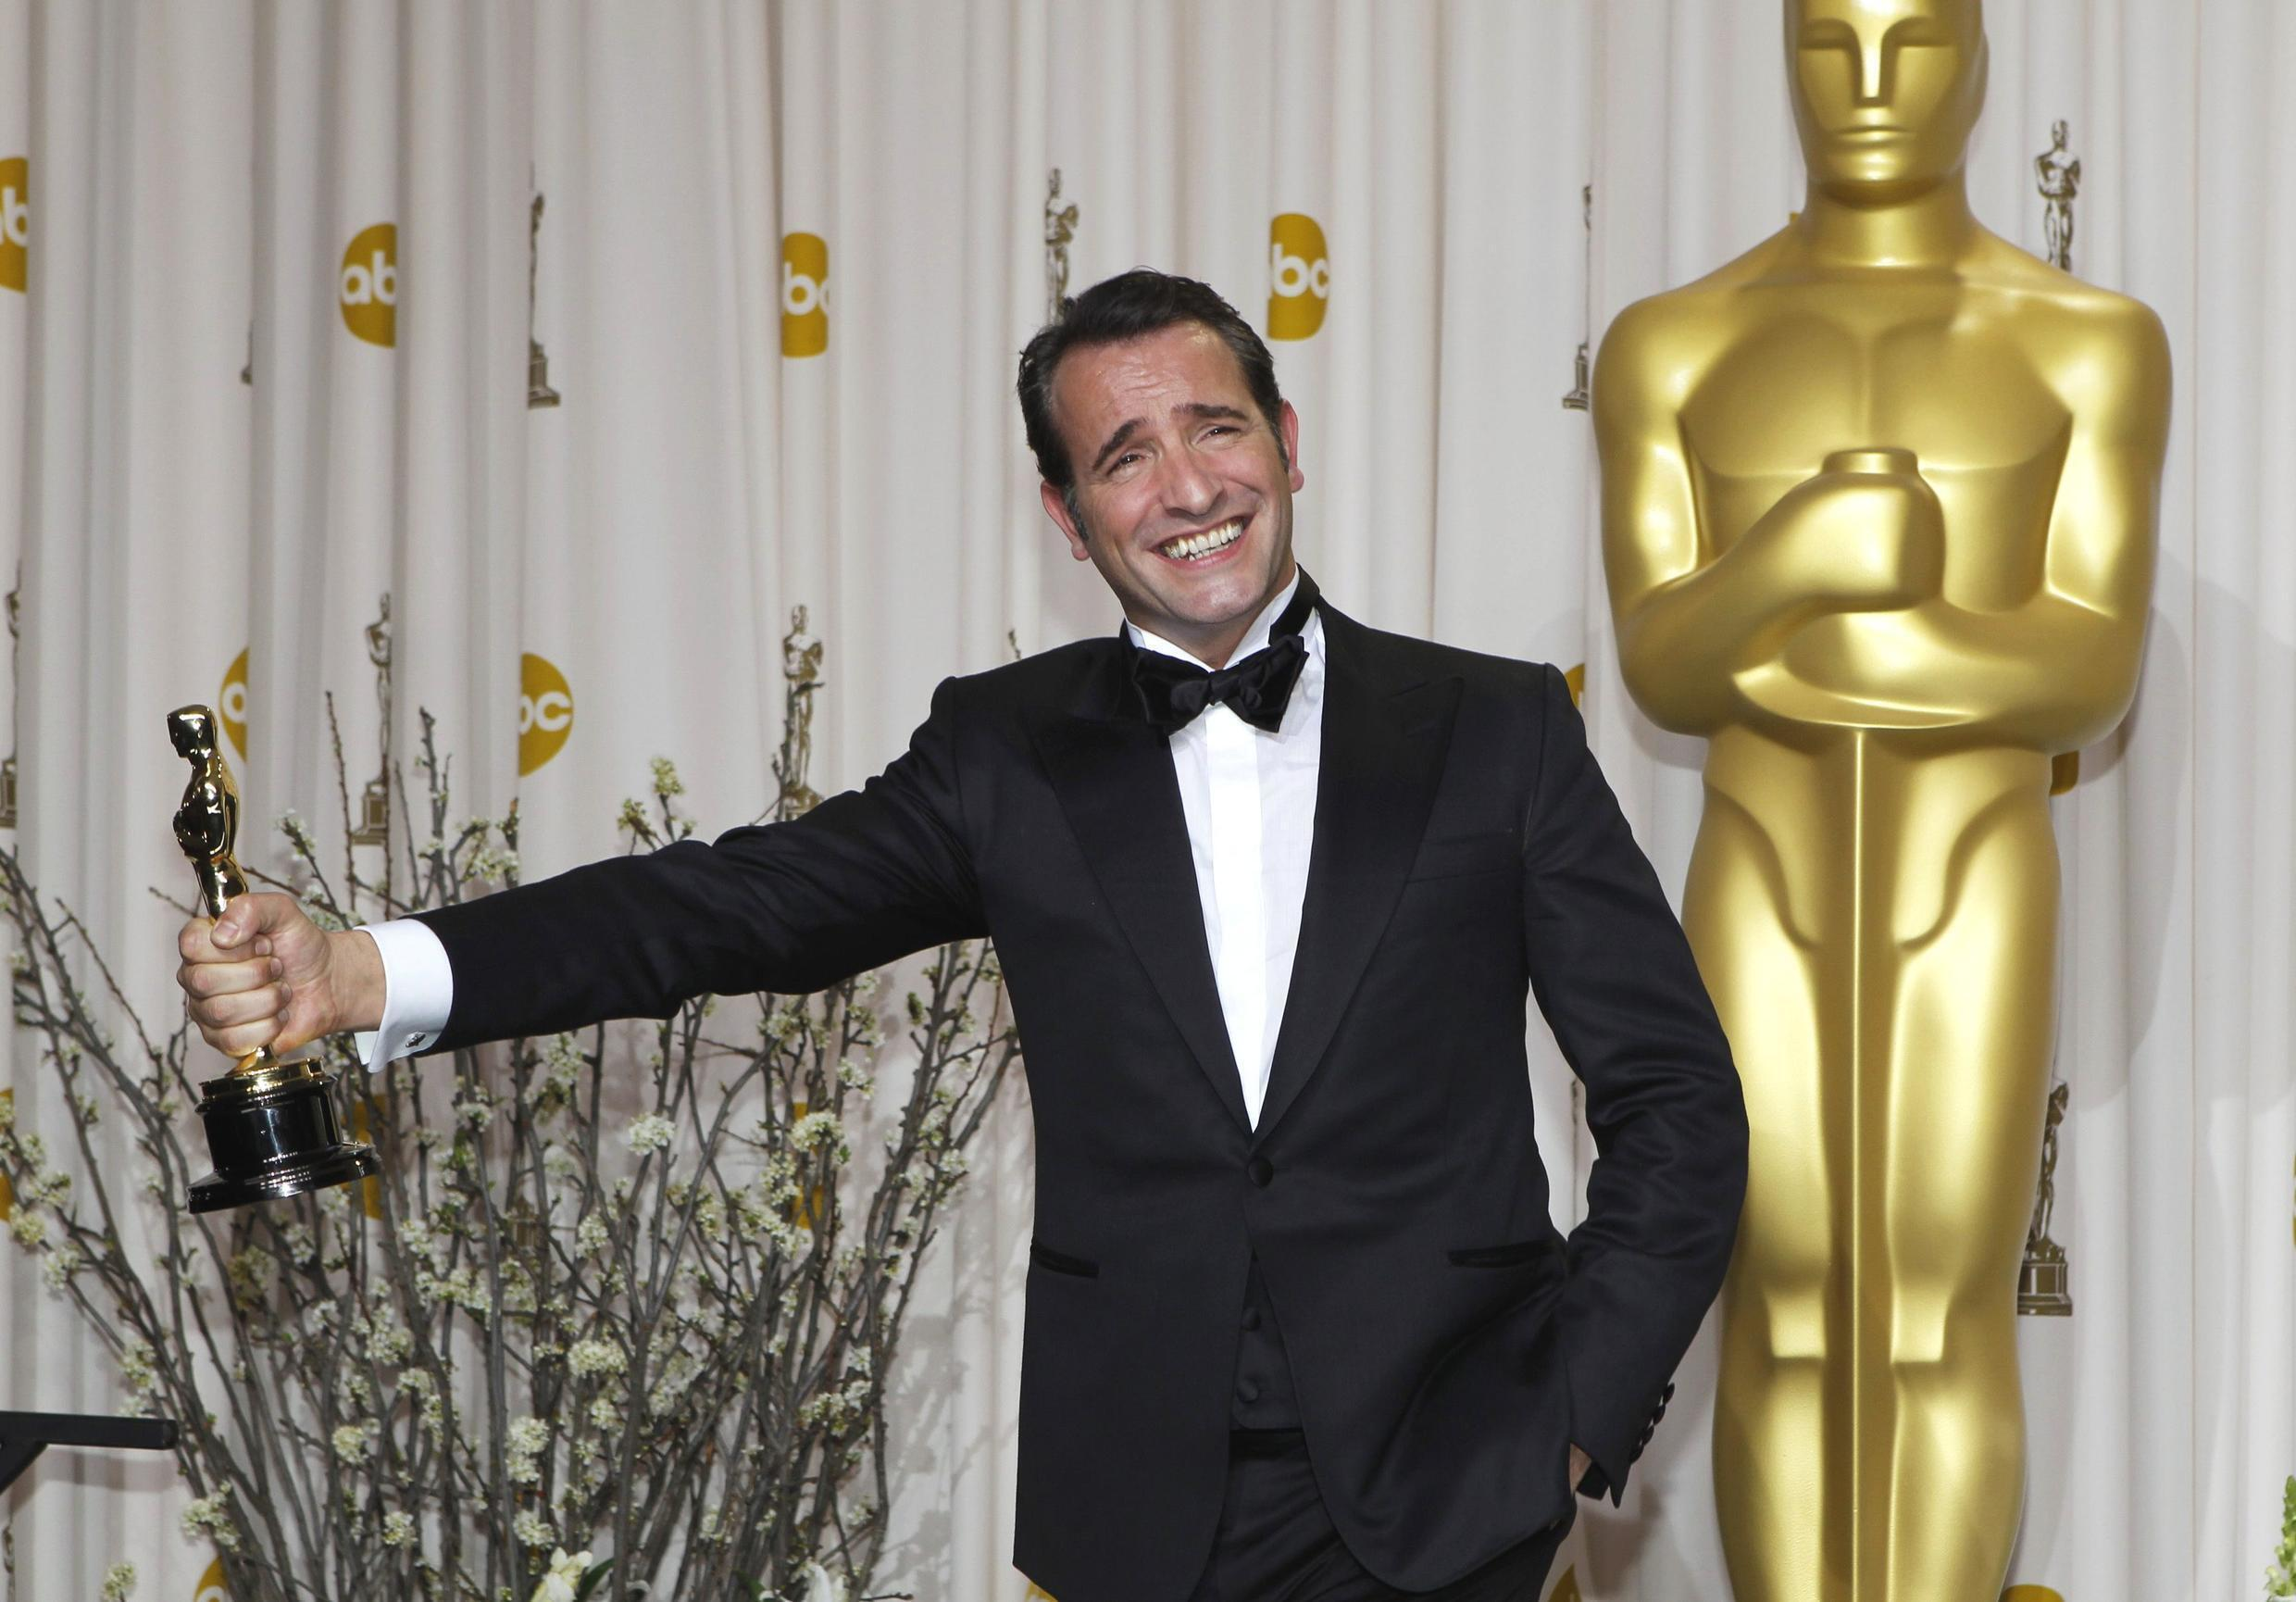 Jean Dujardin won Oscar for best actor for his role in the film The Artist, 26 February 2012.